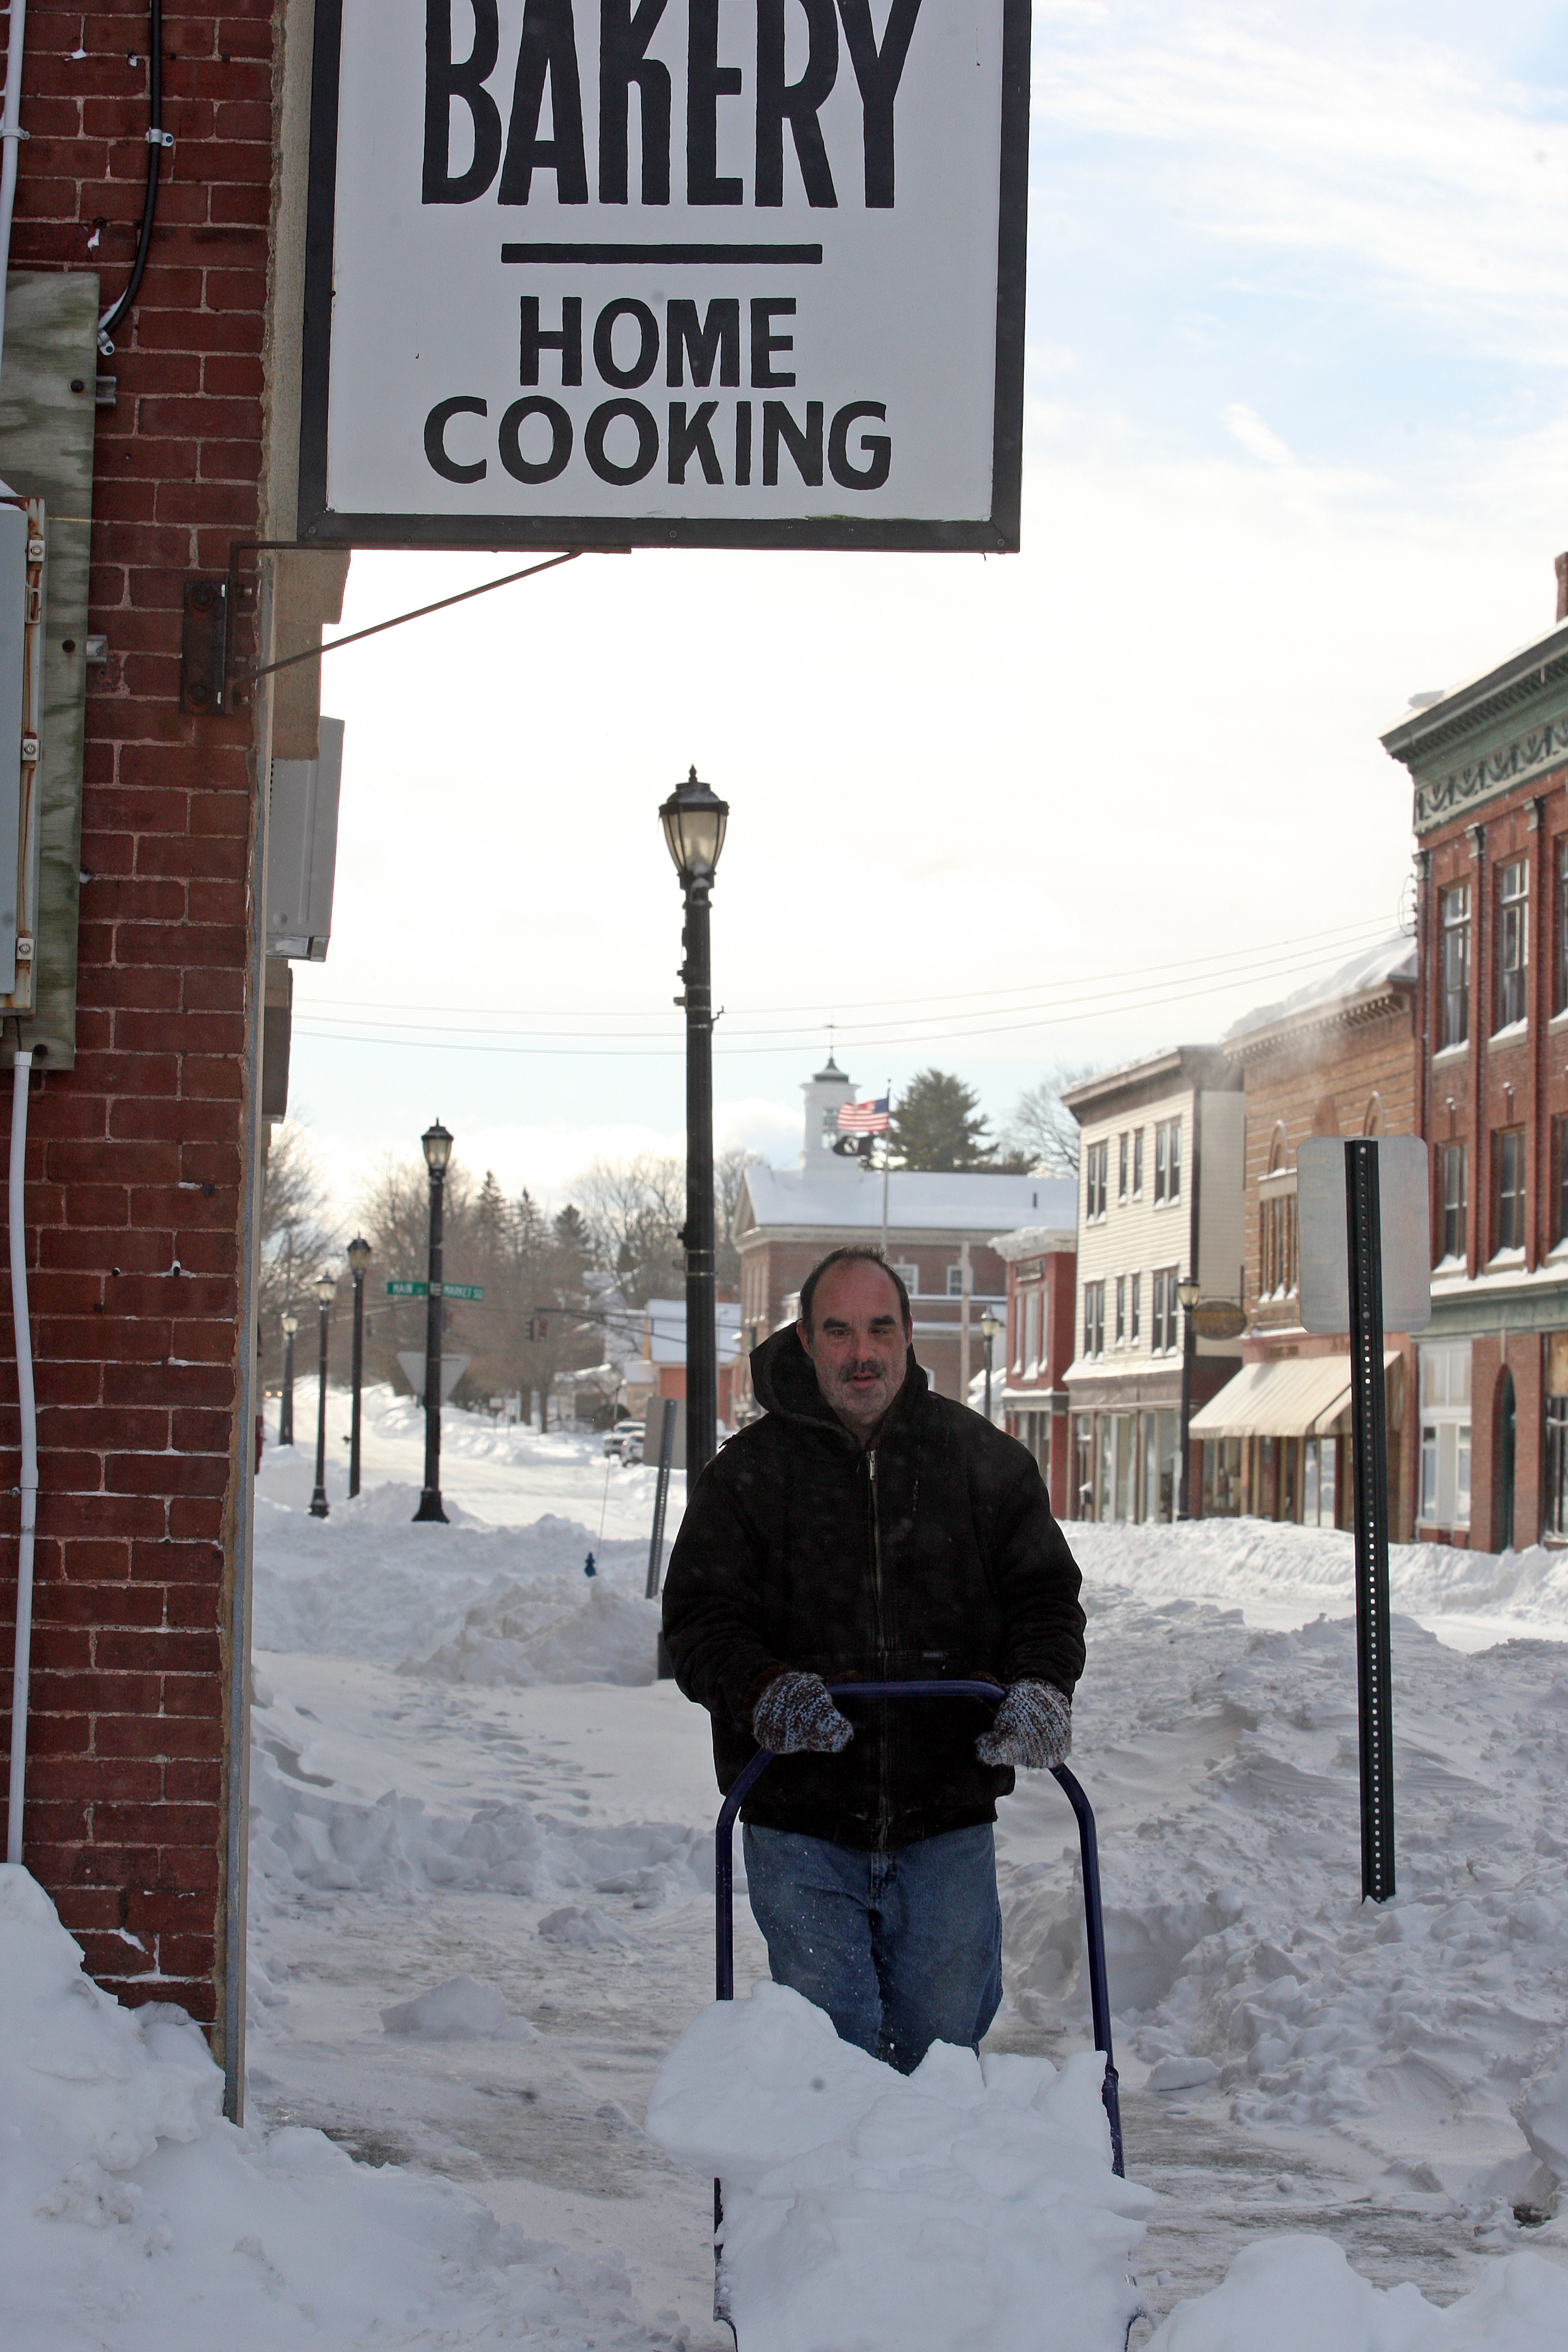 As folks dig out from well over foot of snow in County